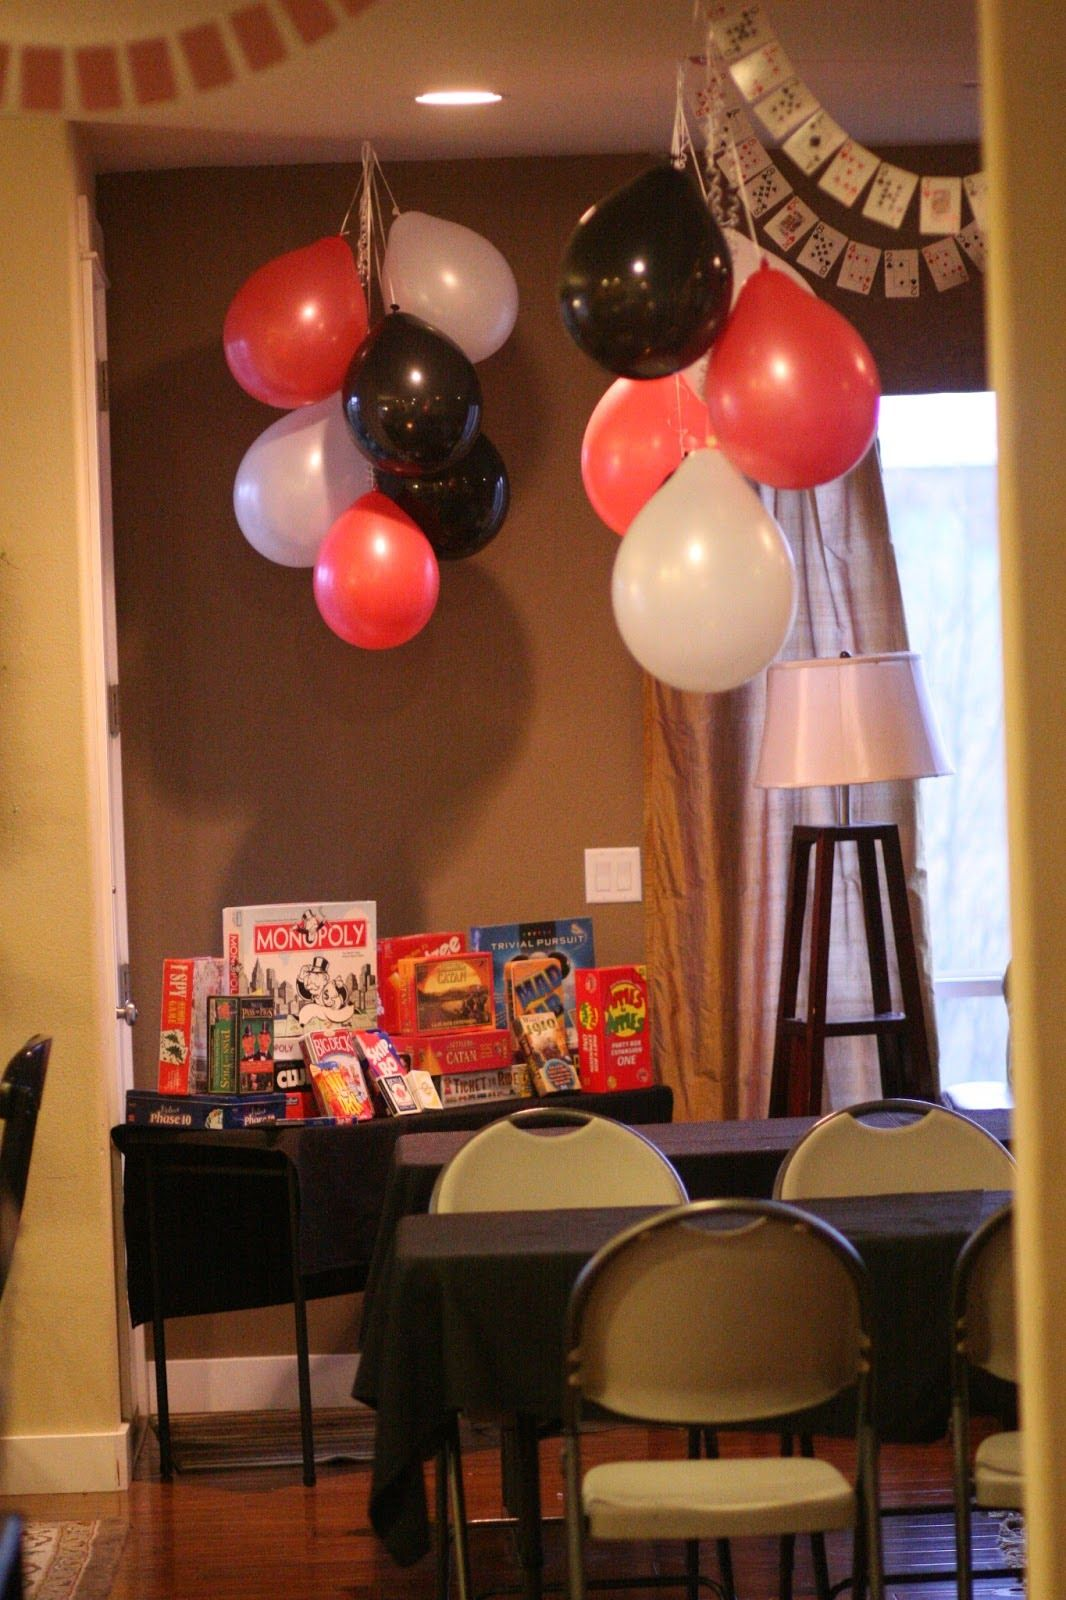 Awesome Party Ideas on this blog (Superhero, Casino, Train) #party #games #food #activities #OnMySideOfTheBed